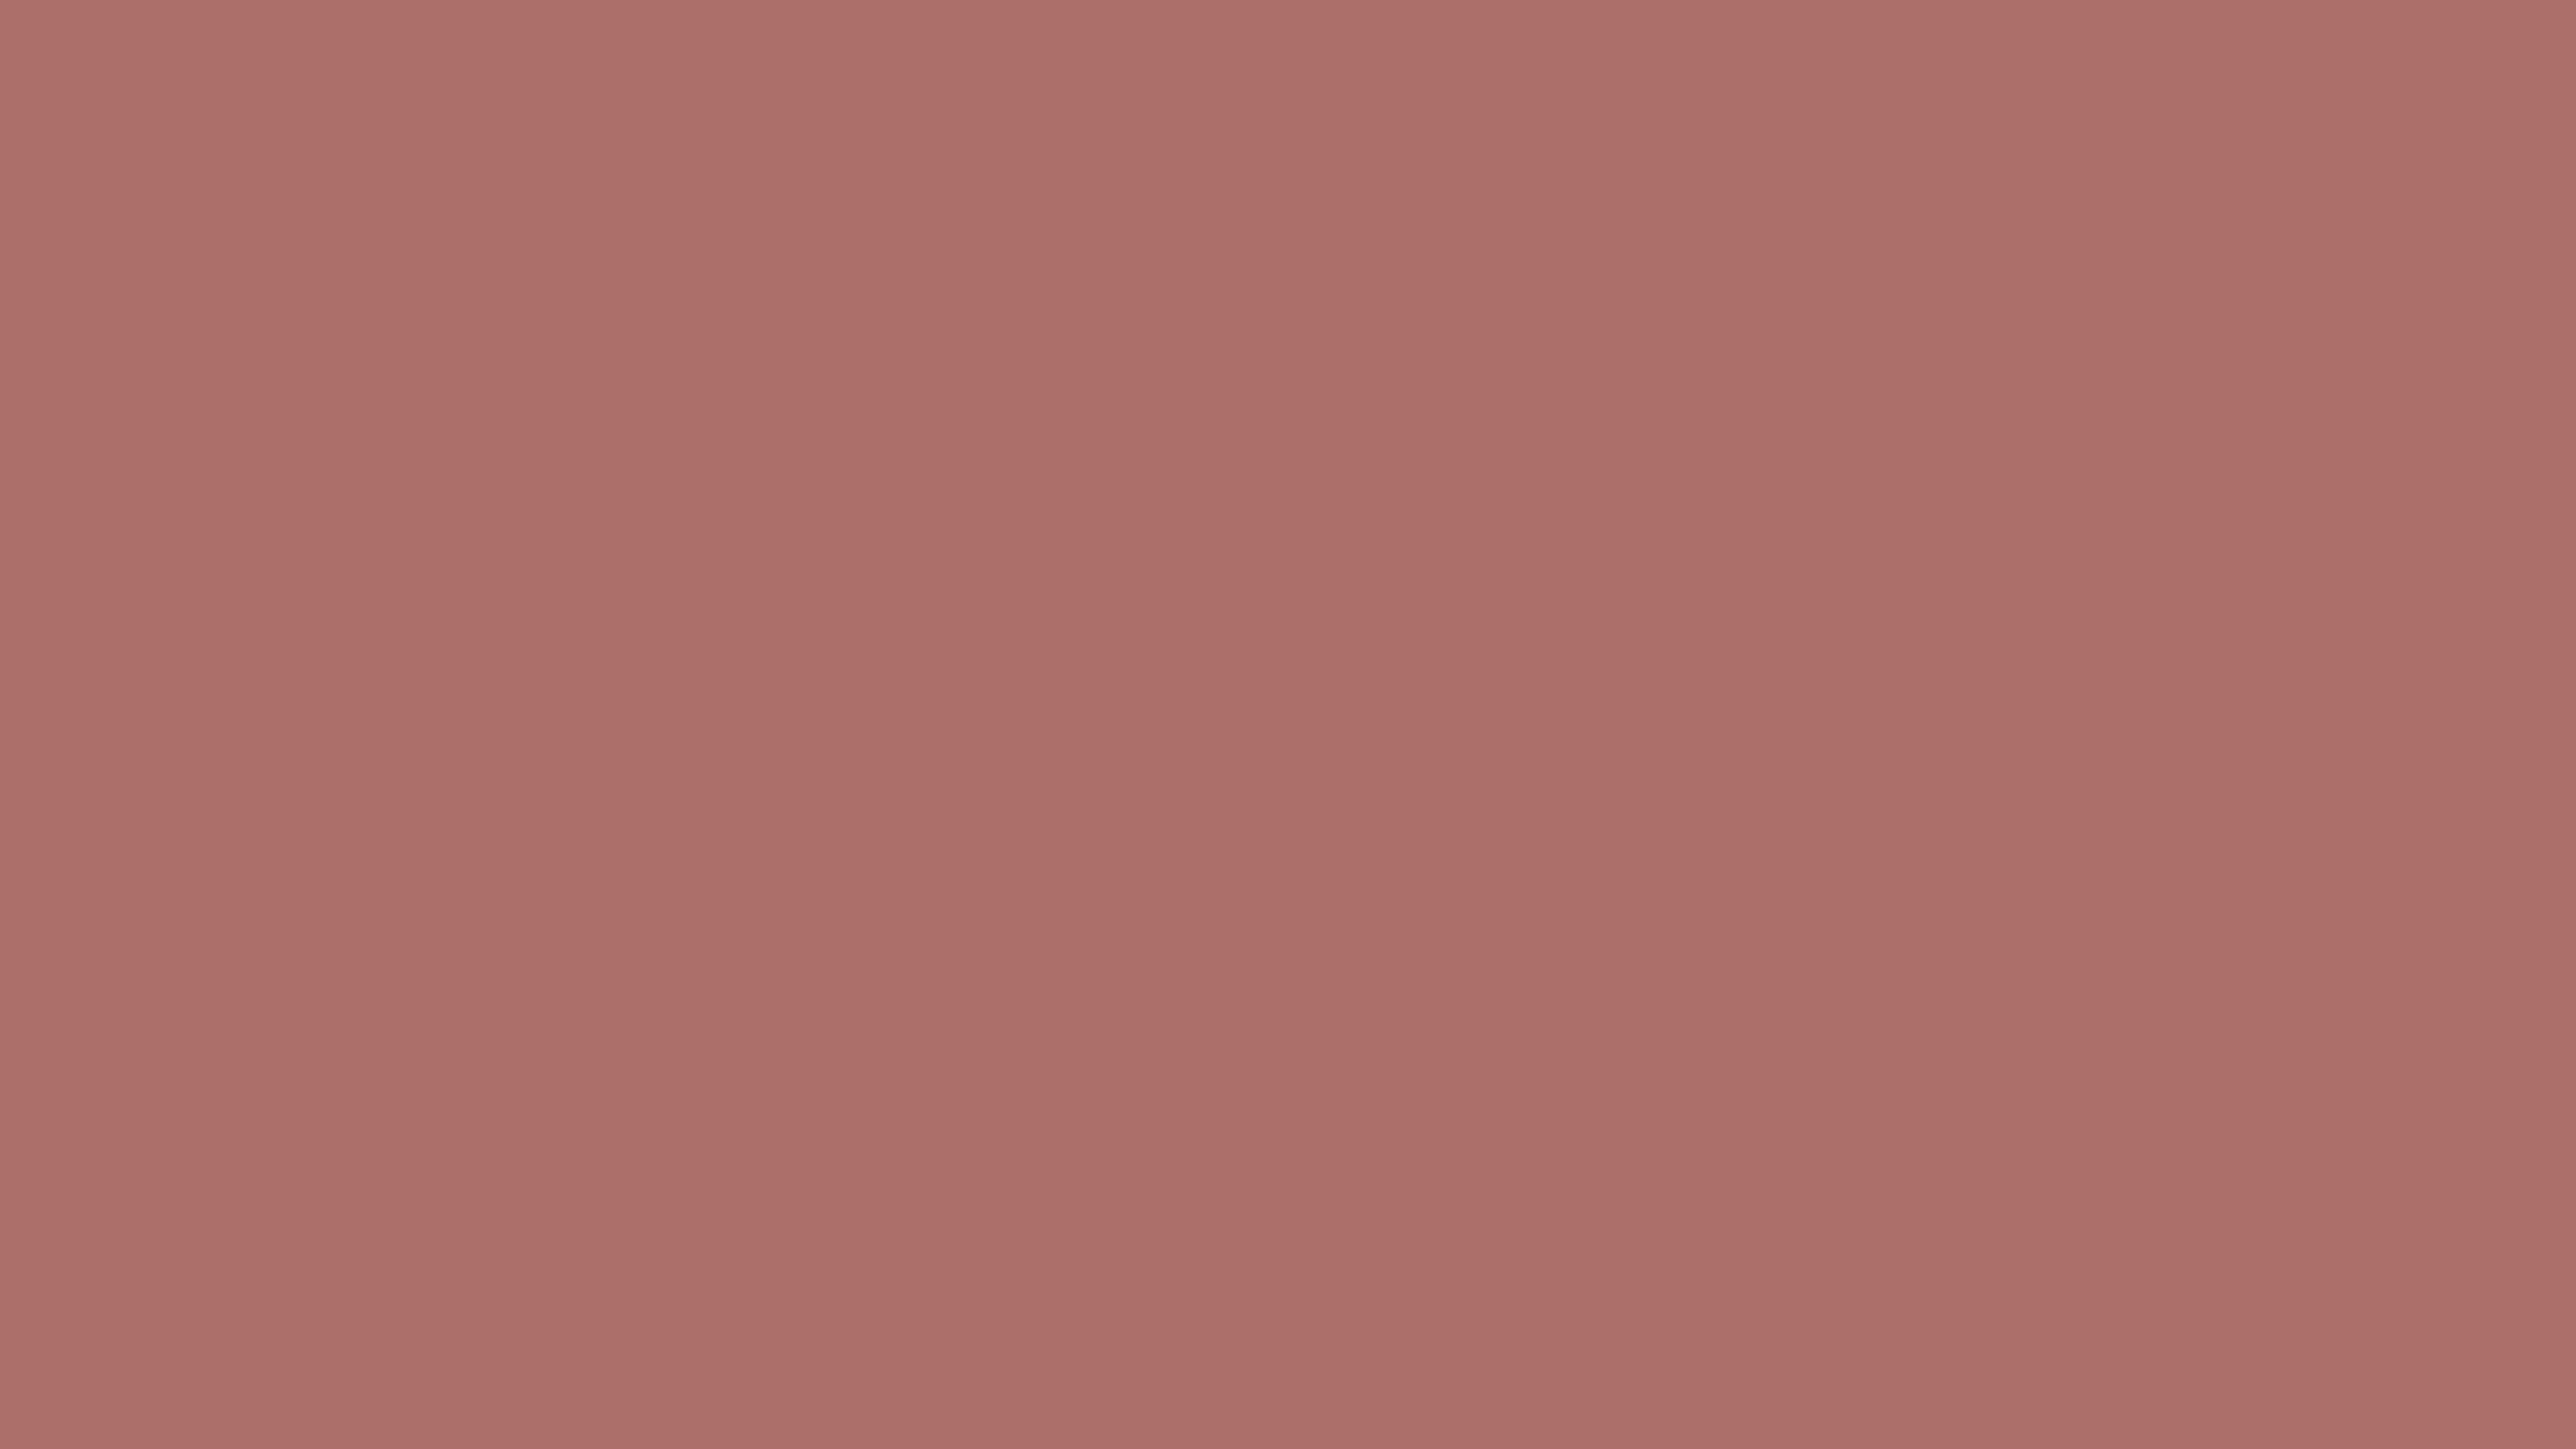 4096x2304 Copper Penny Solid Color Background